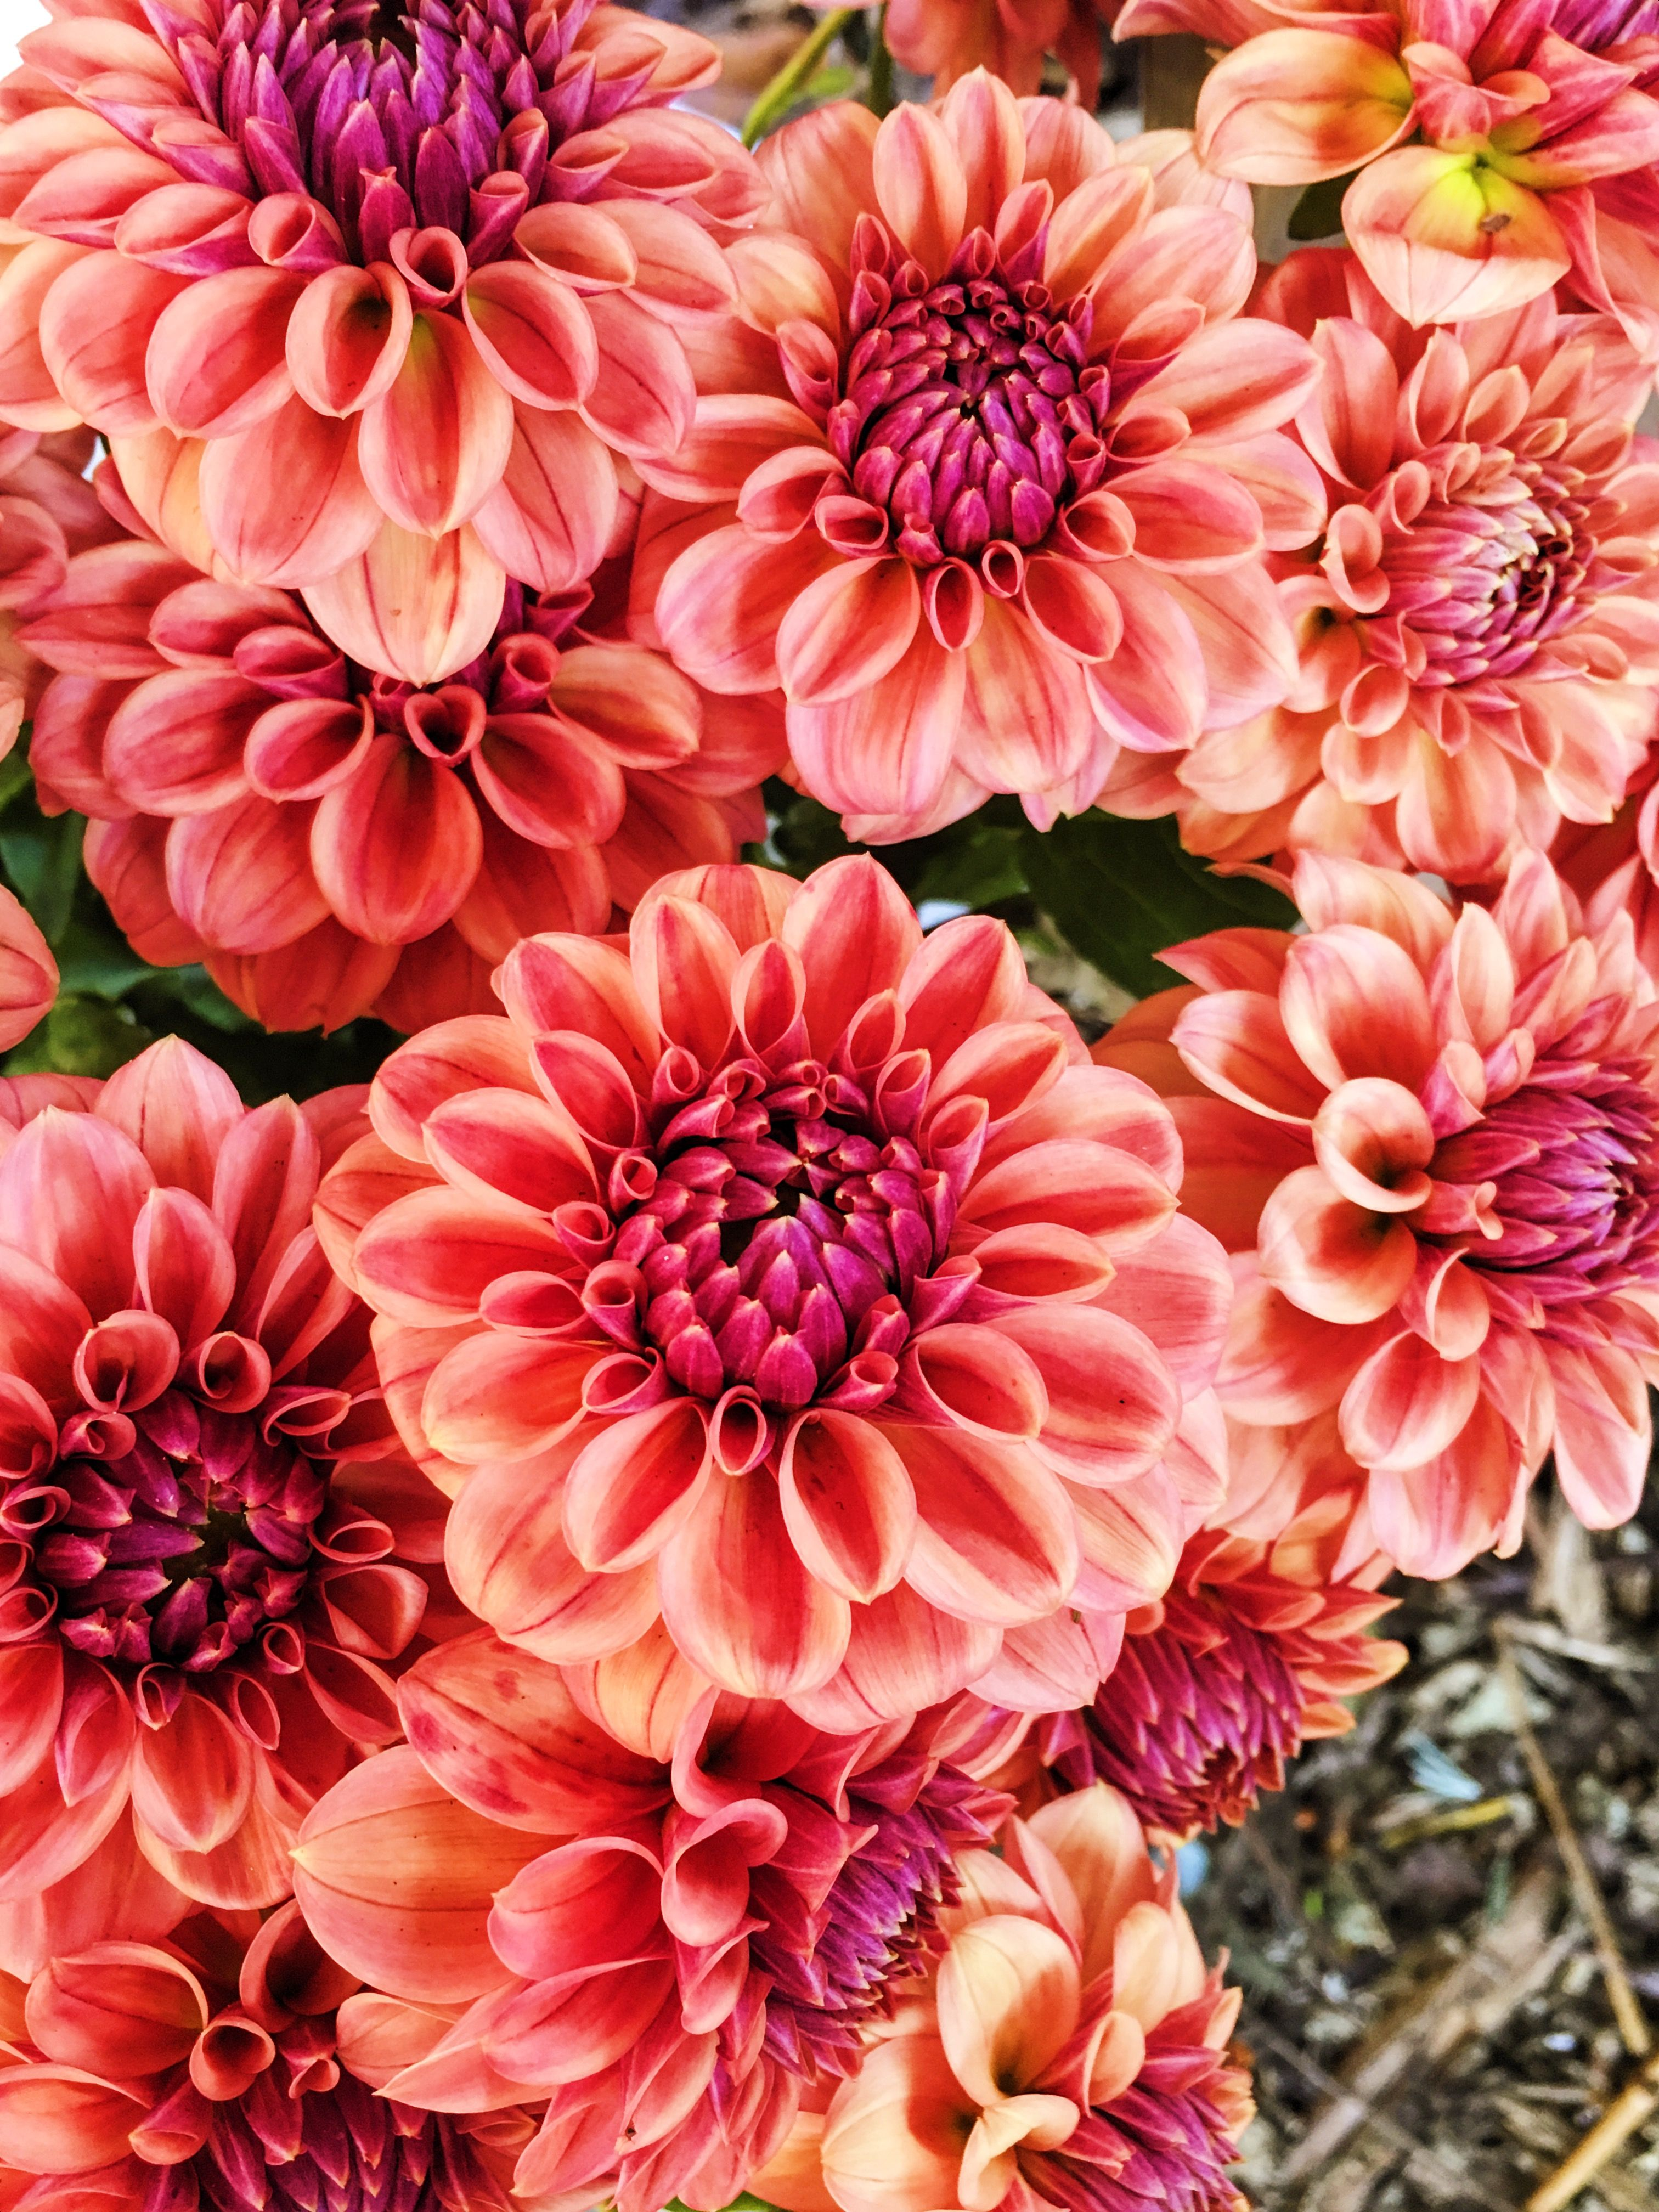 How About This Persimmon Hue As An Accent Color Pairs Well With Gold Dahlias Grown By Love N Fresh Flowers August Flowers Amazing Flowers Beautiful Flowers